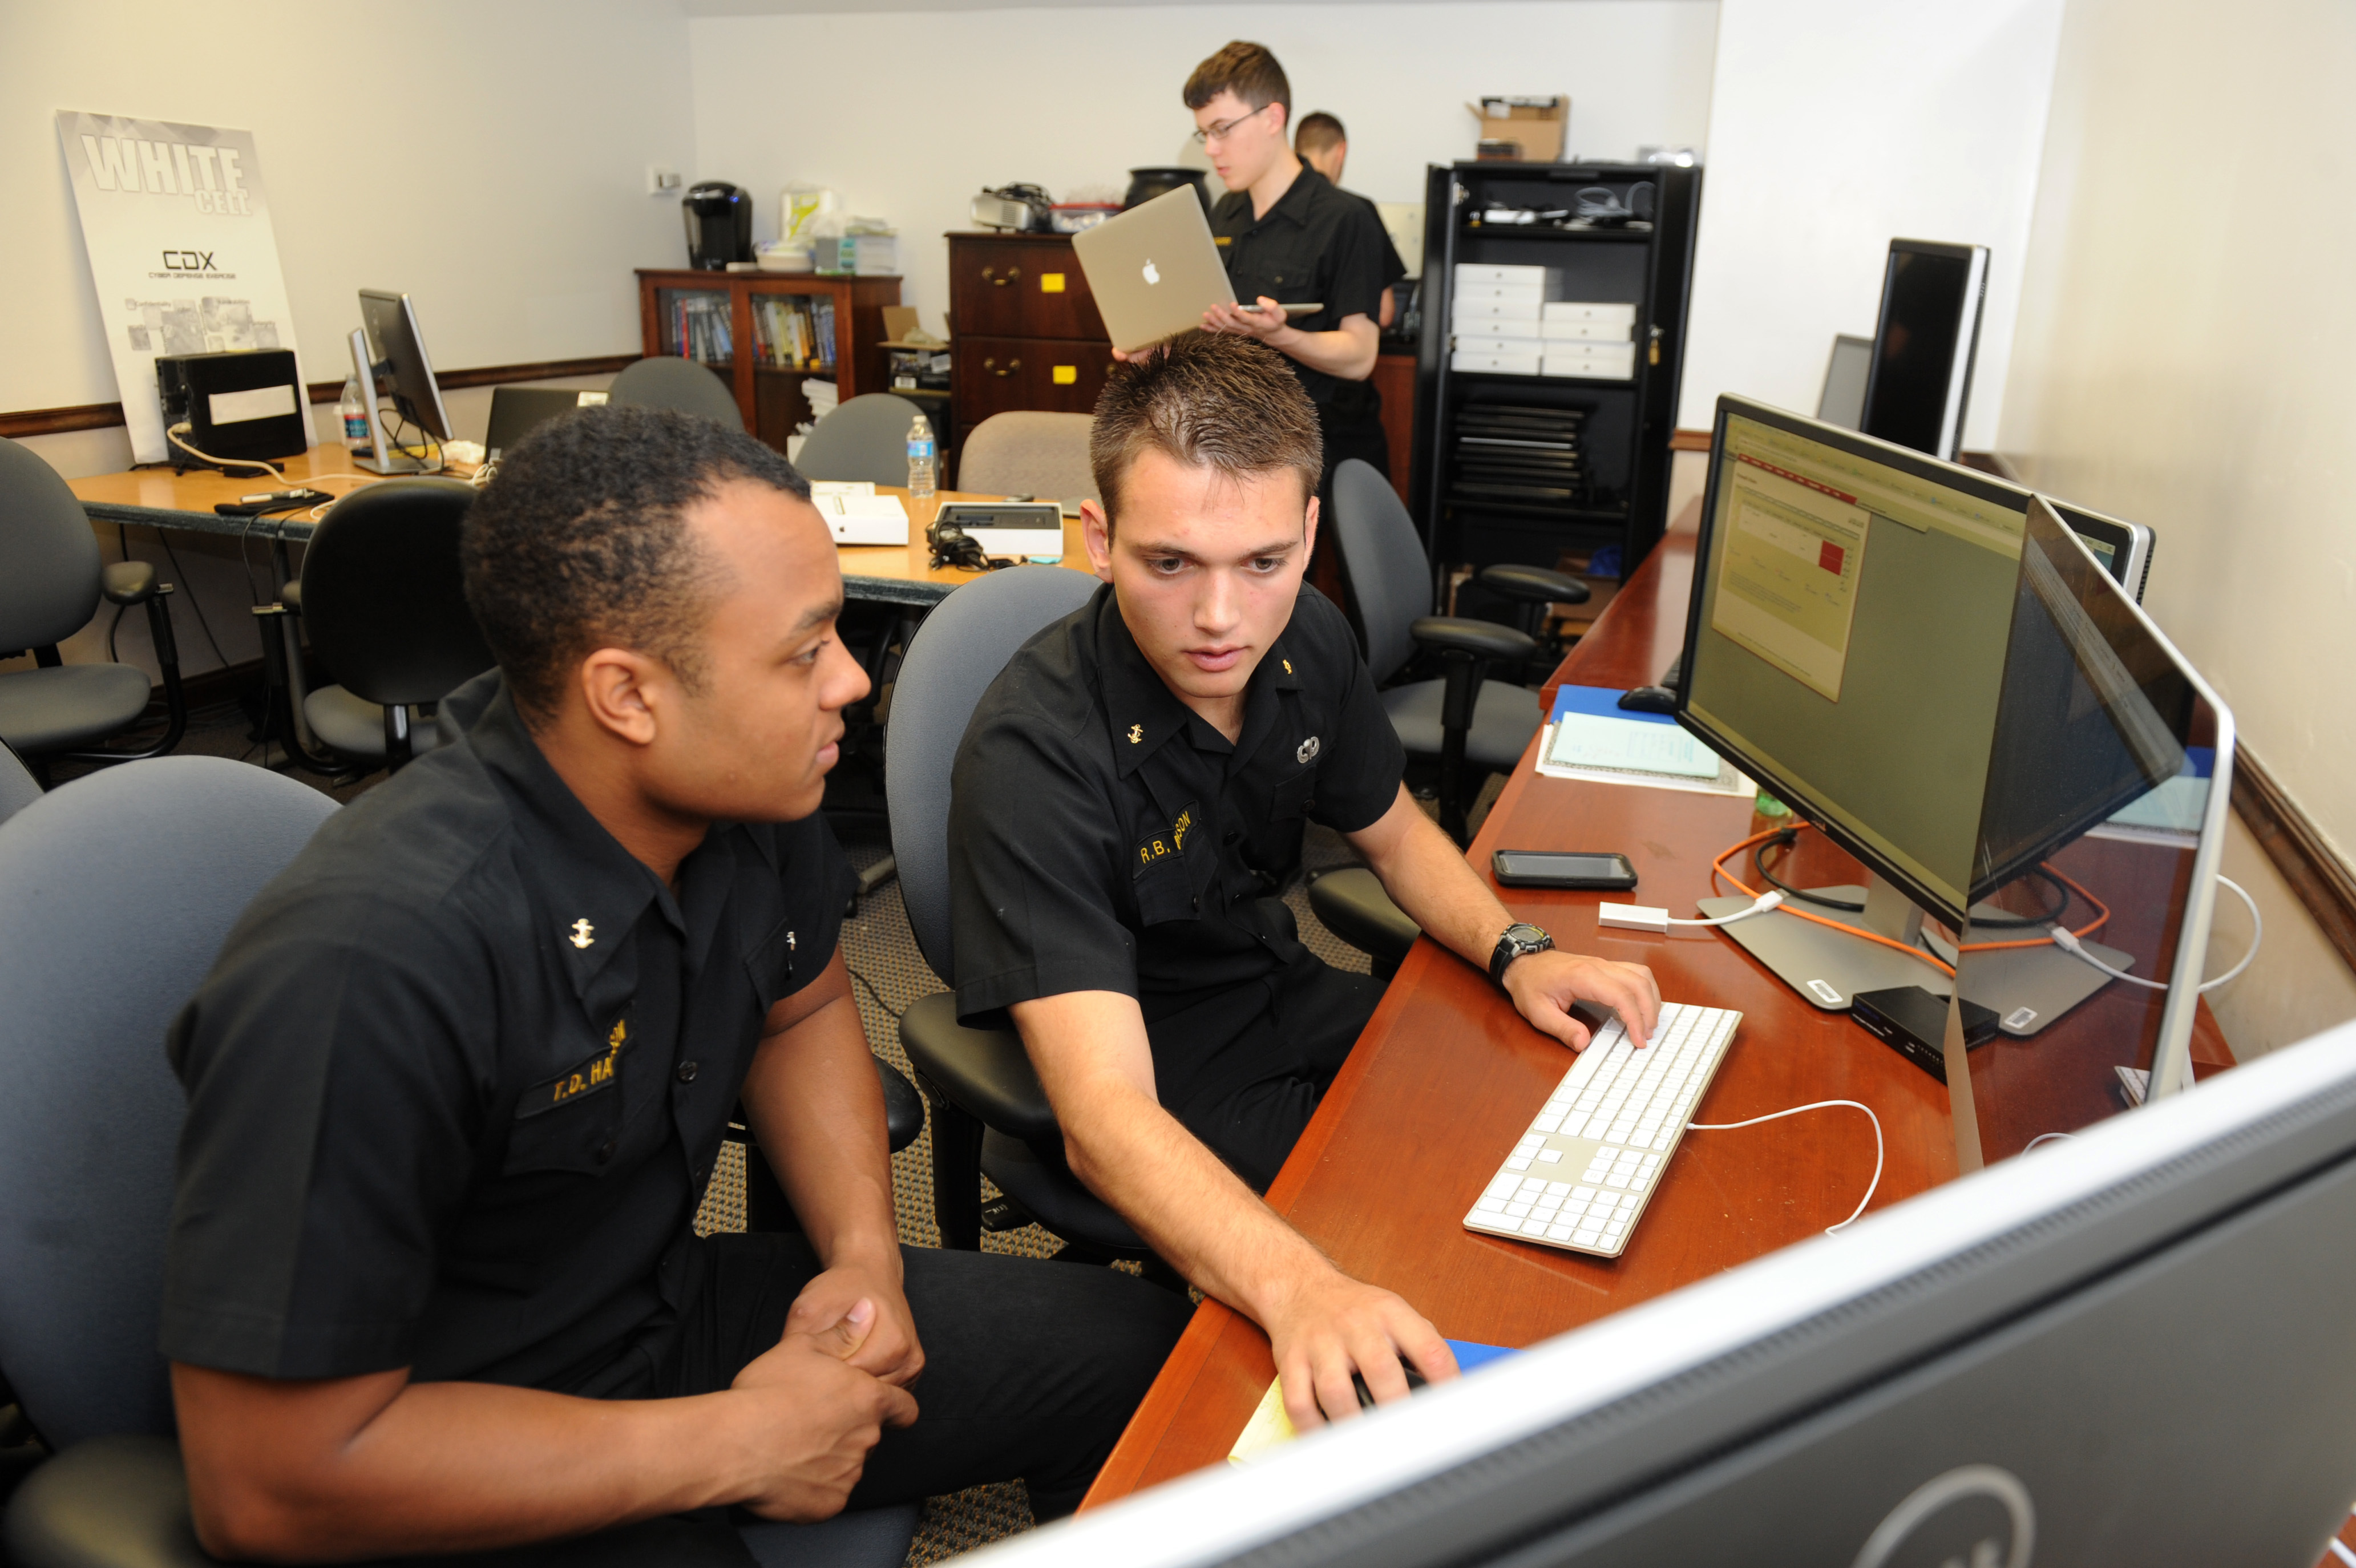 military cyber offensive defensive weapons training military times